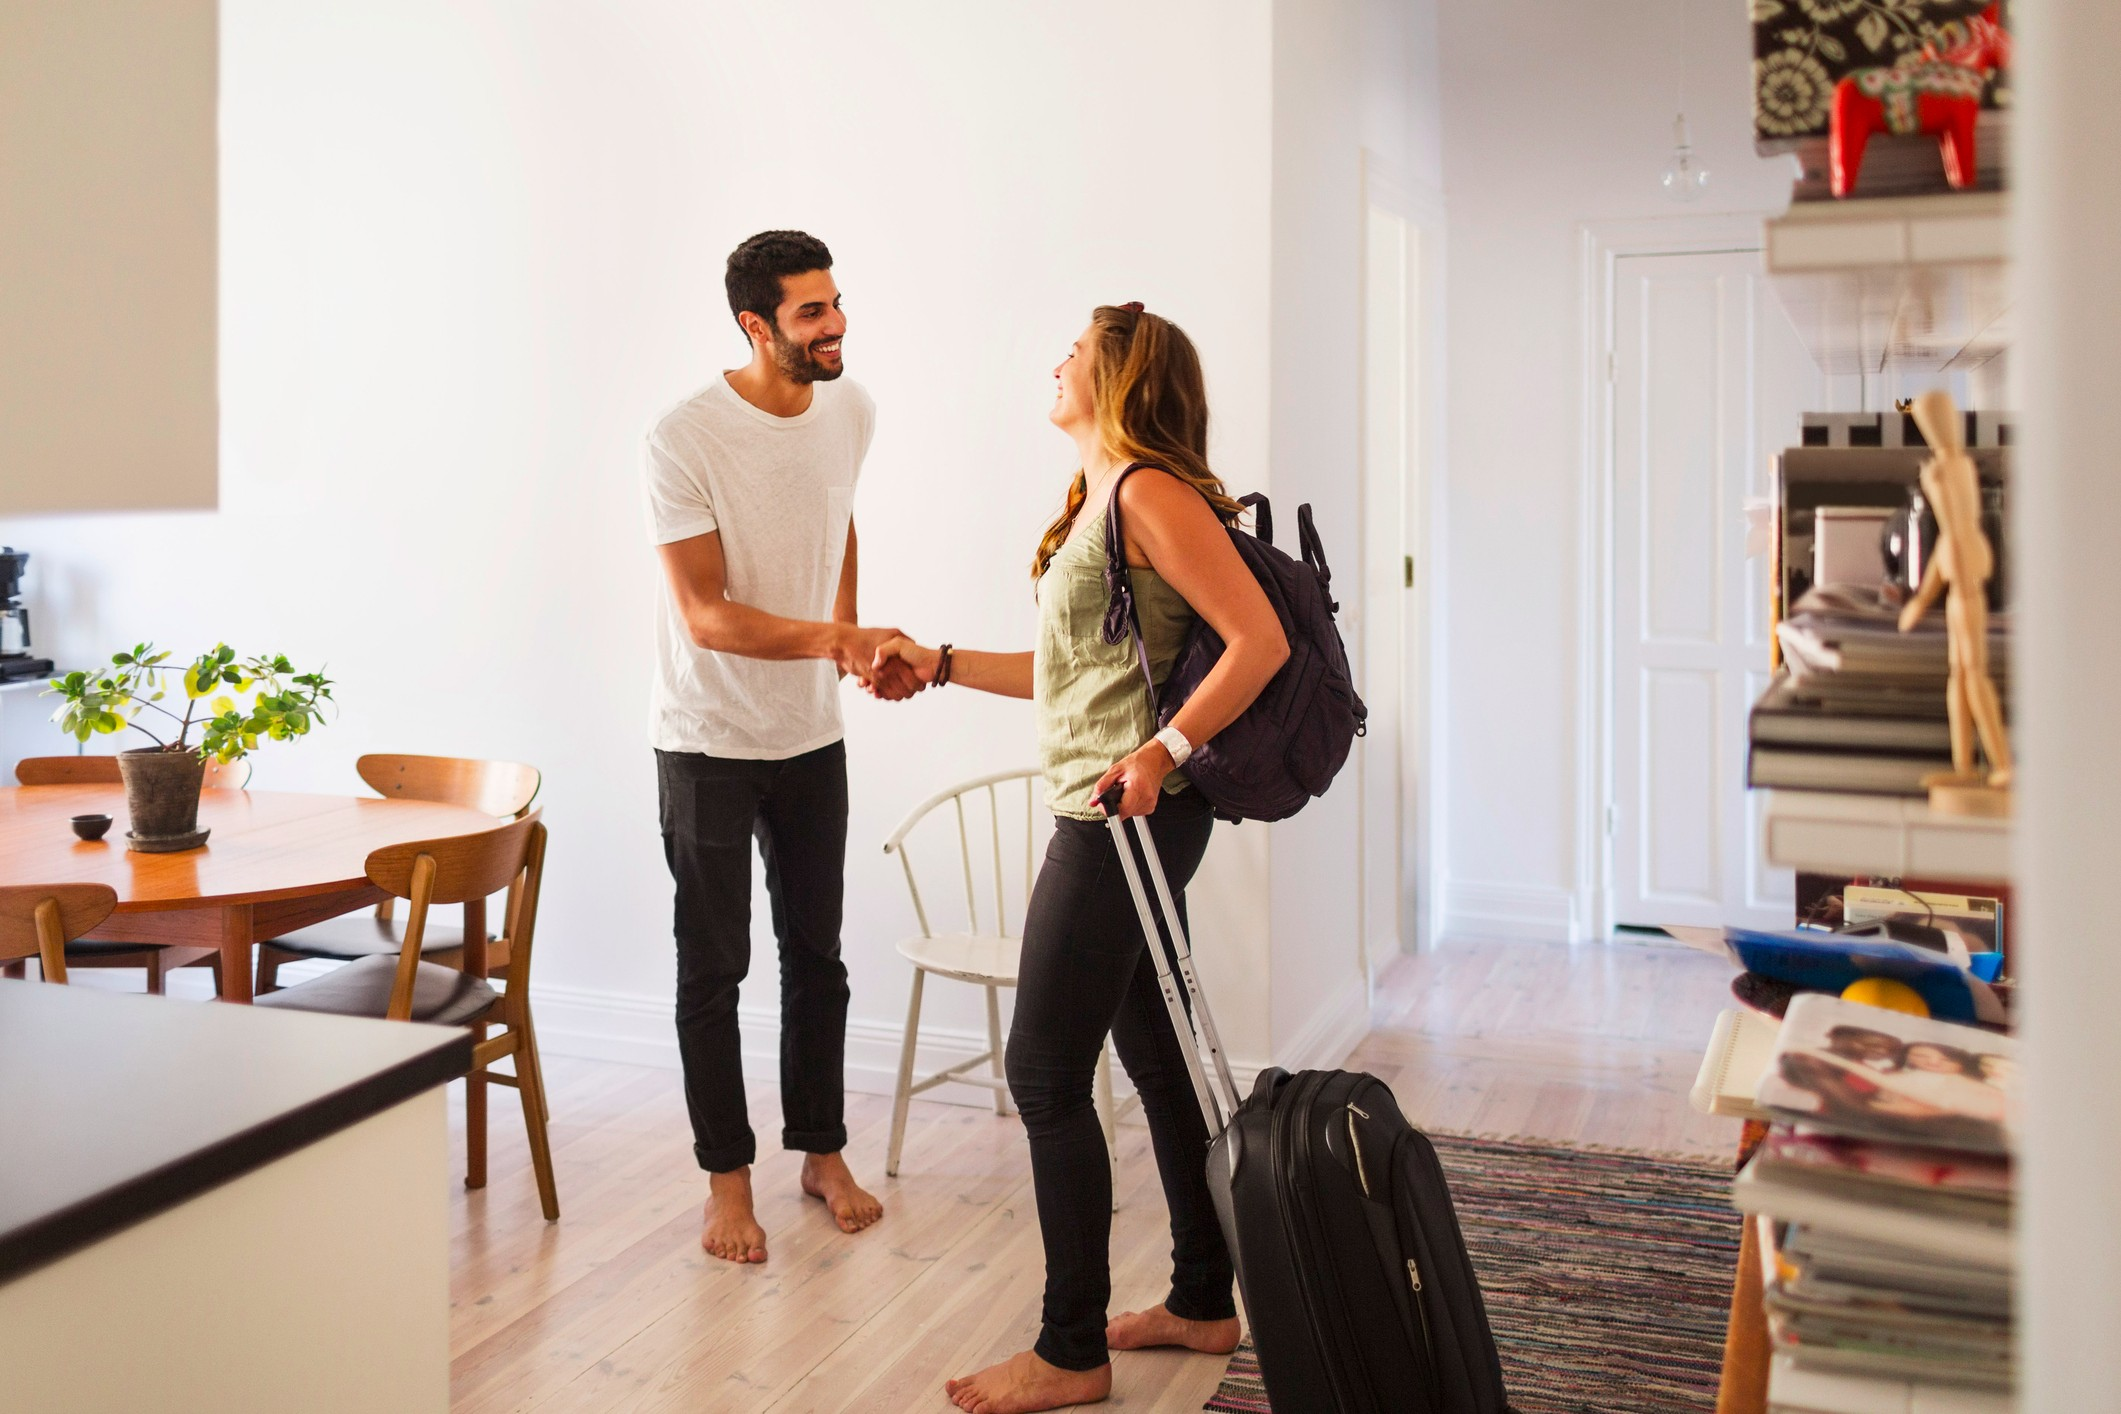 How Renting a Room in Your House Could Earn You $11,000 a Year